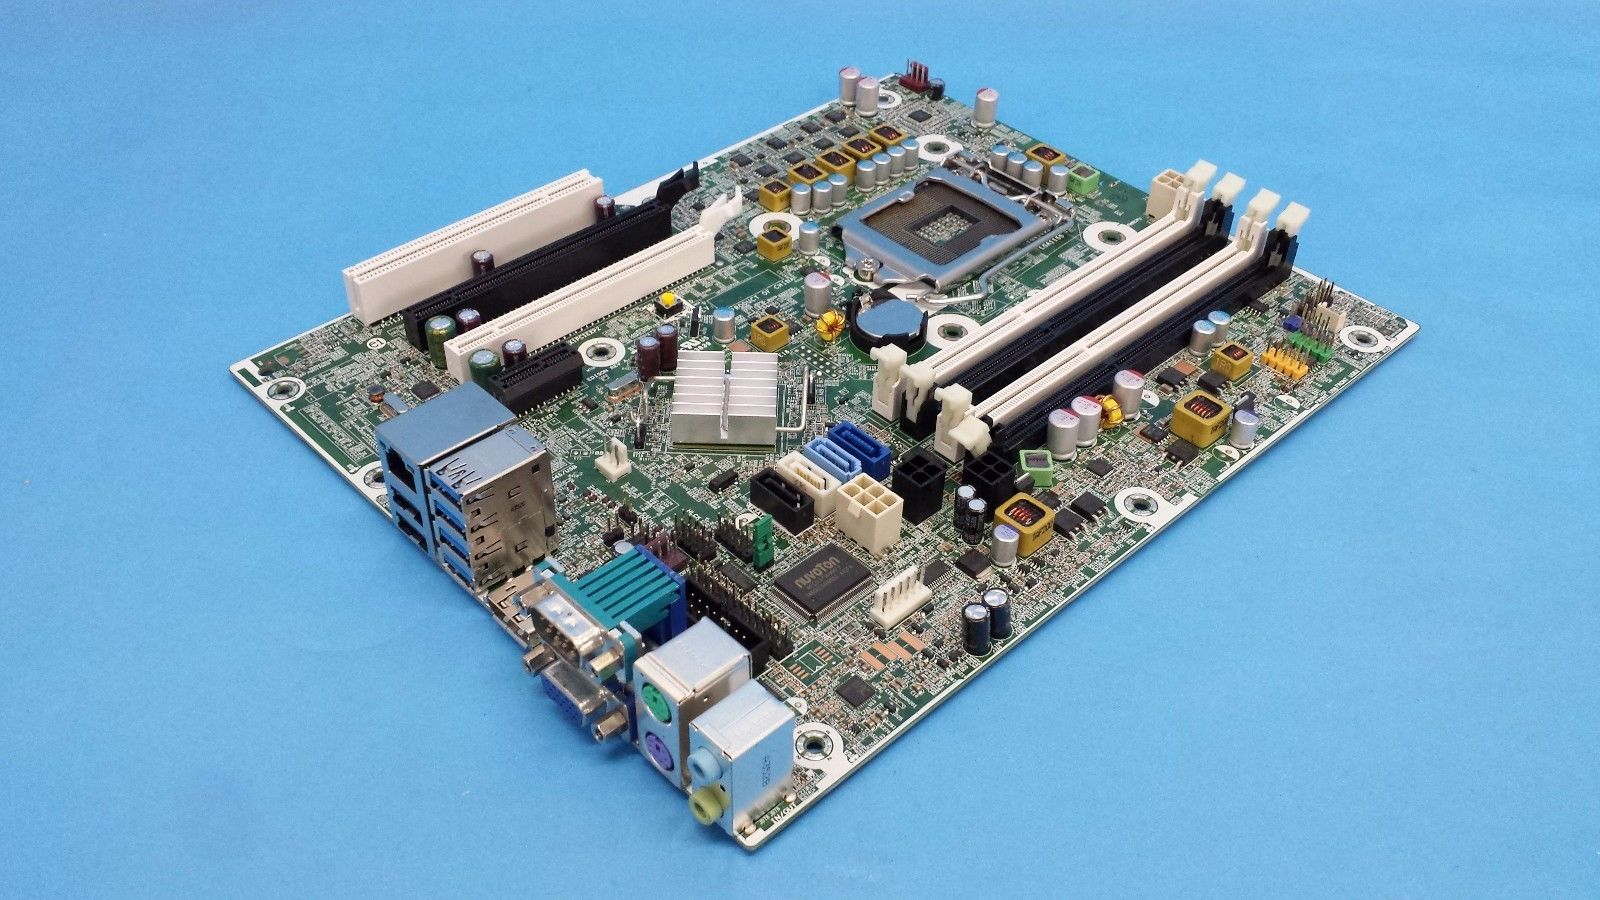 HP Compaq Elite 8300 SFF Intel LGA1155 Motherboard 657094-001